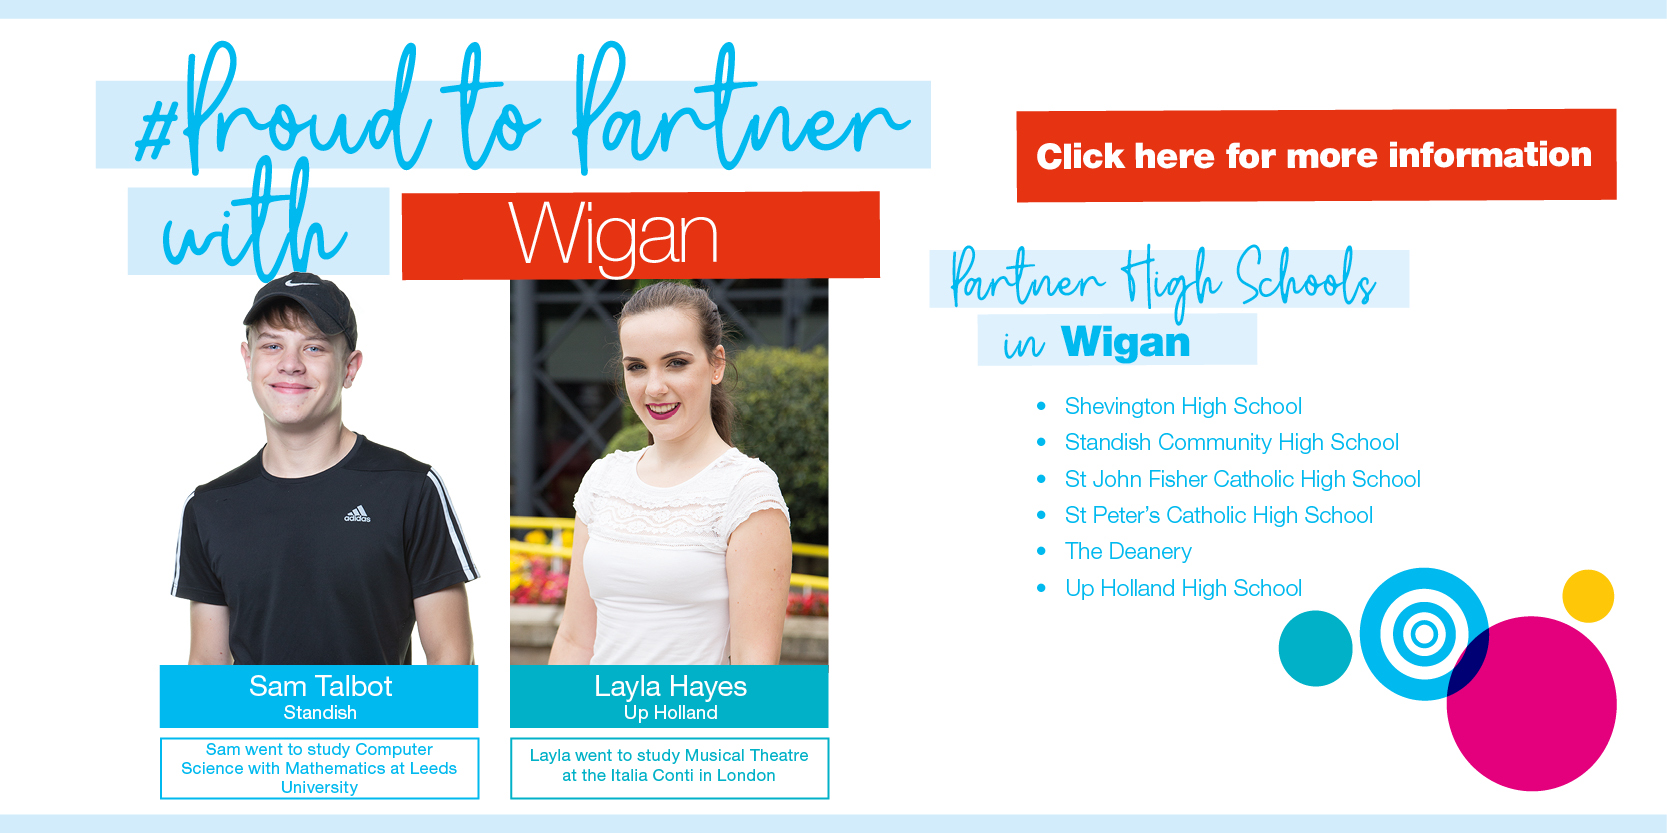 Proud to Partner with Wigan... Click HERE for more information Thumbnail